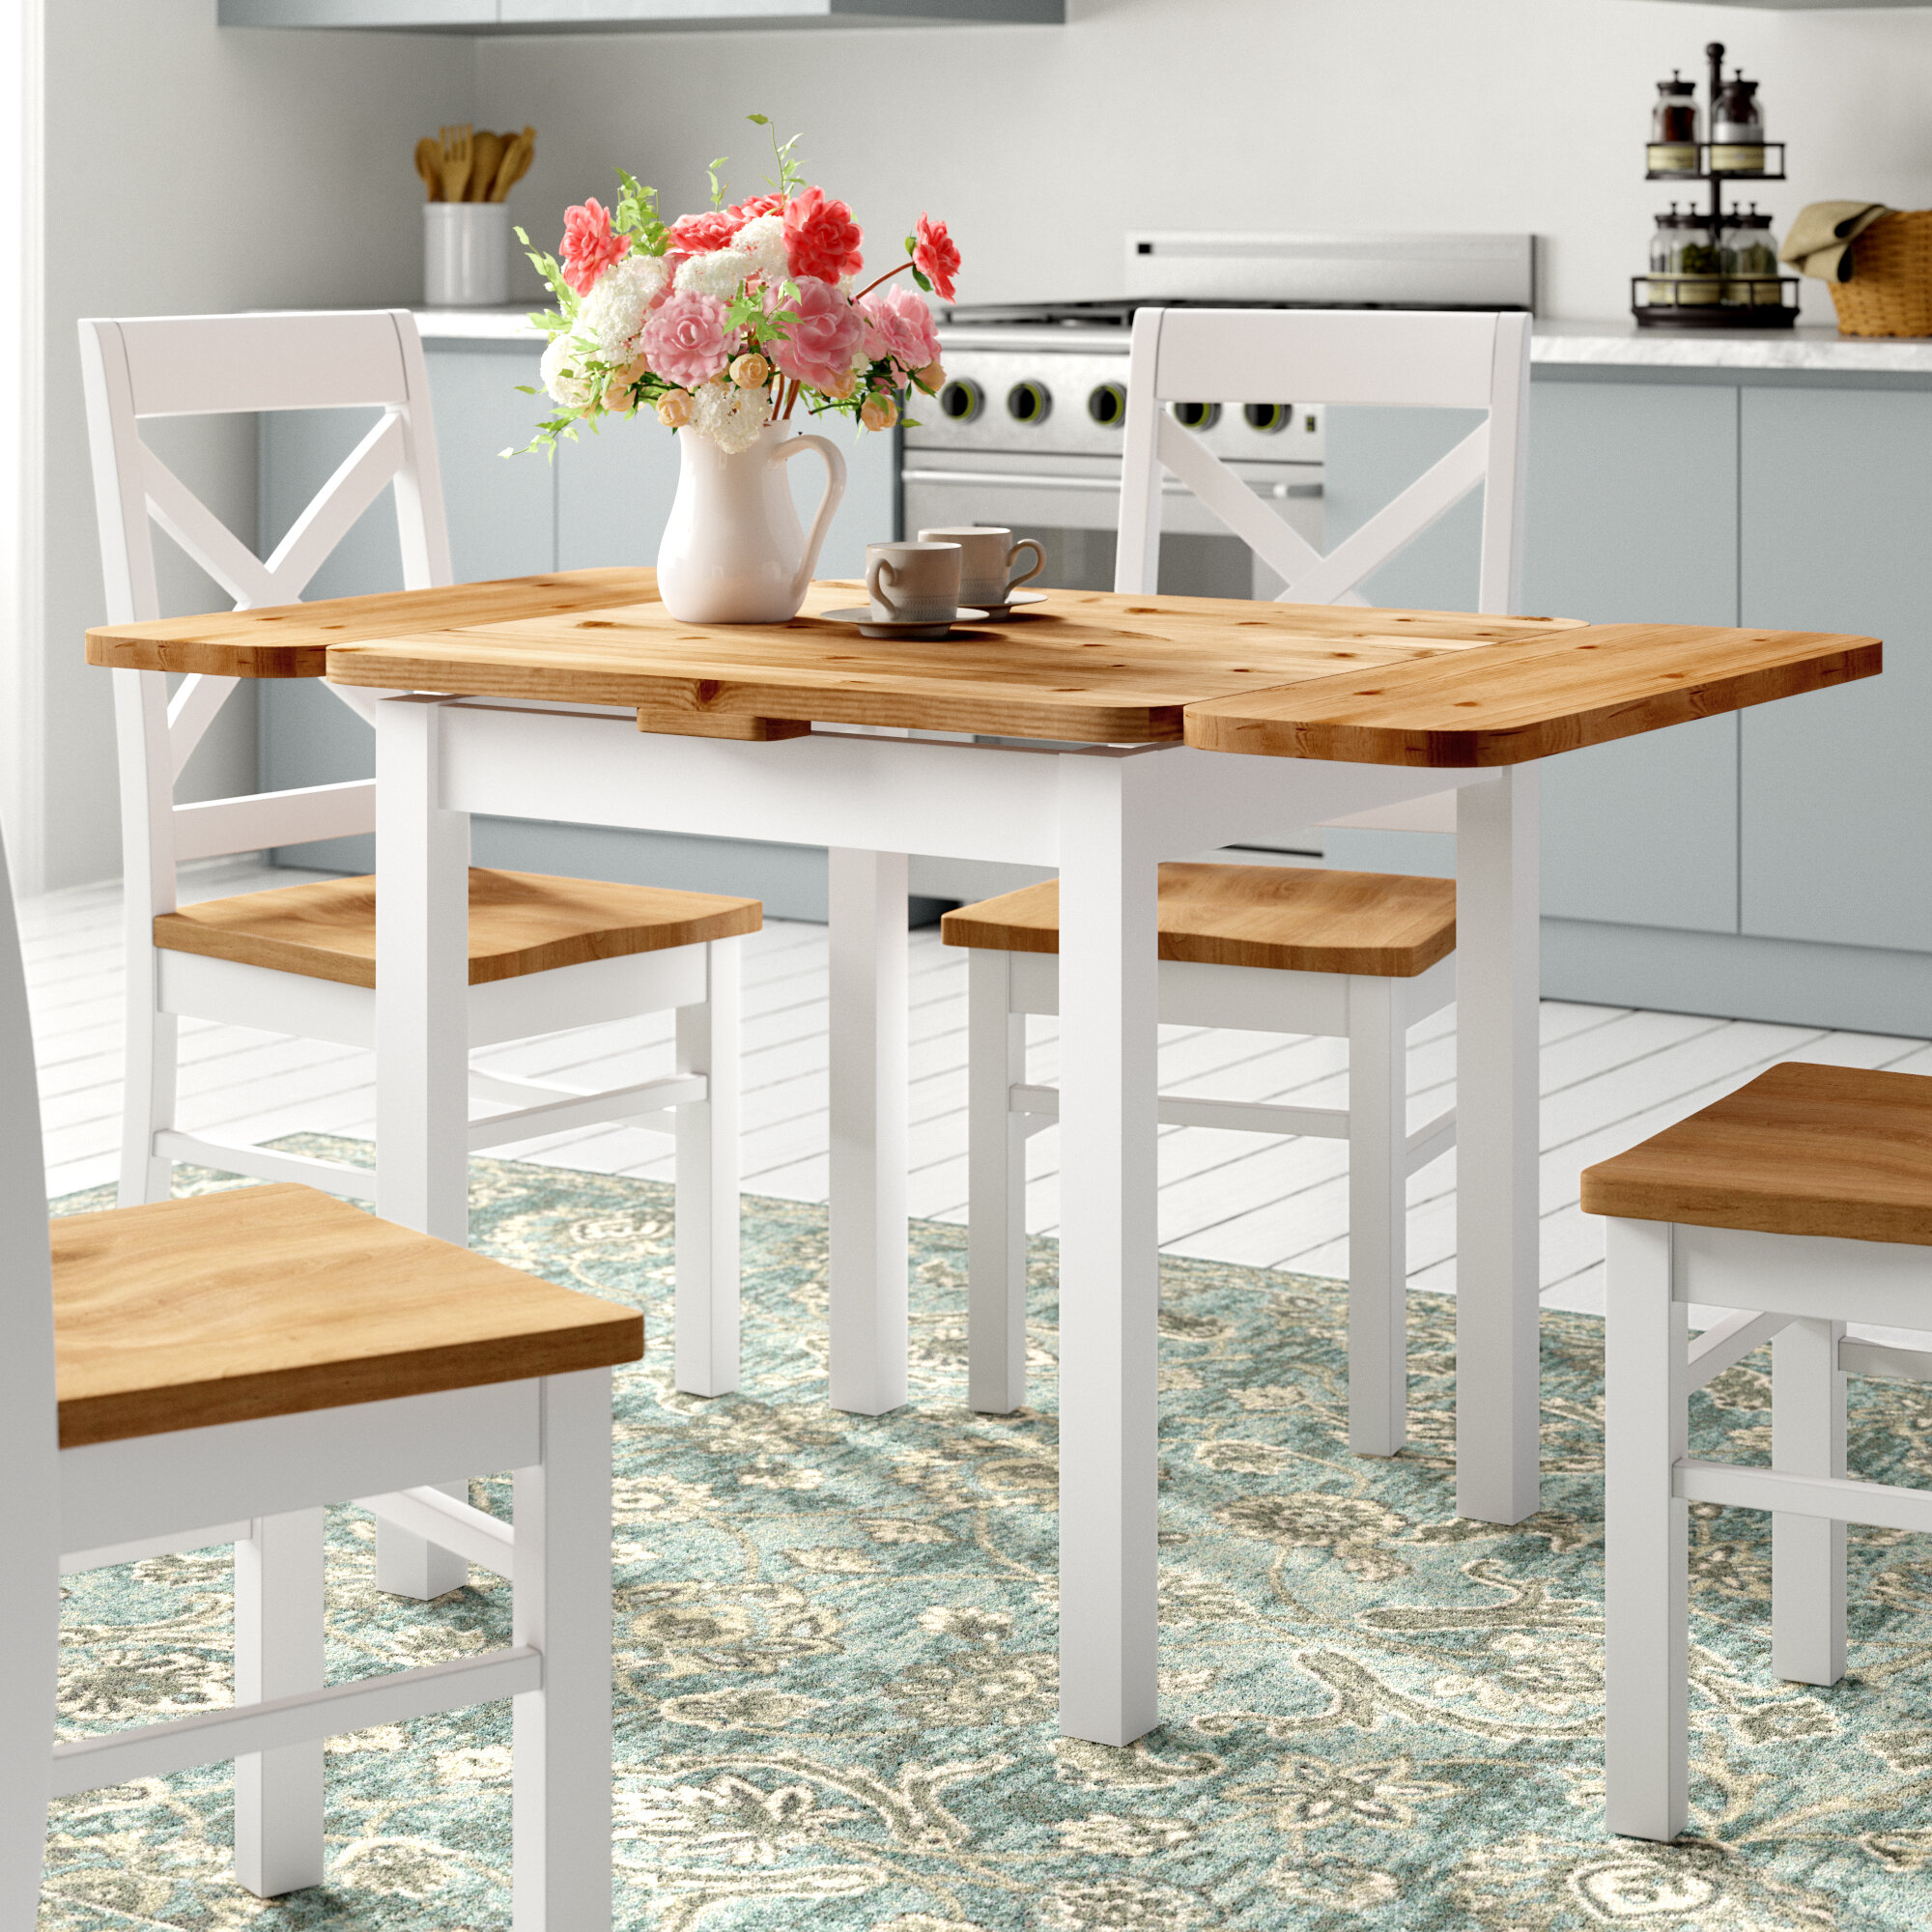 Fernleaf Southsea Extendable Pine Solid Wood Dining Table Reviews Wayfair Co Uk